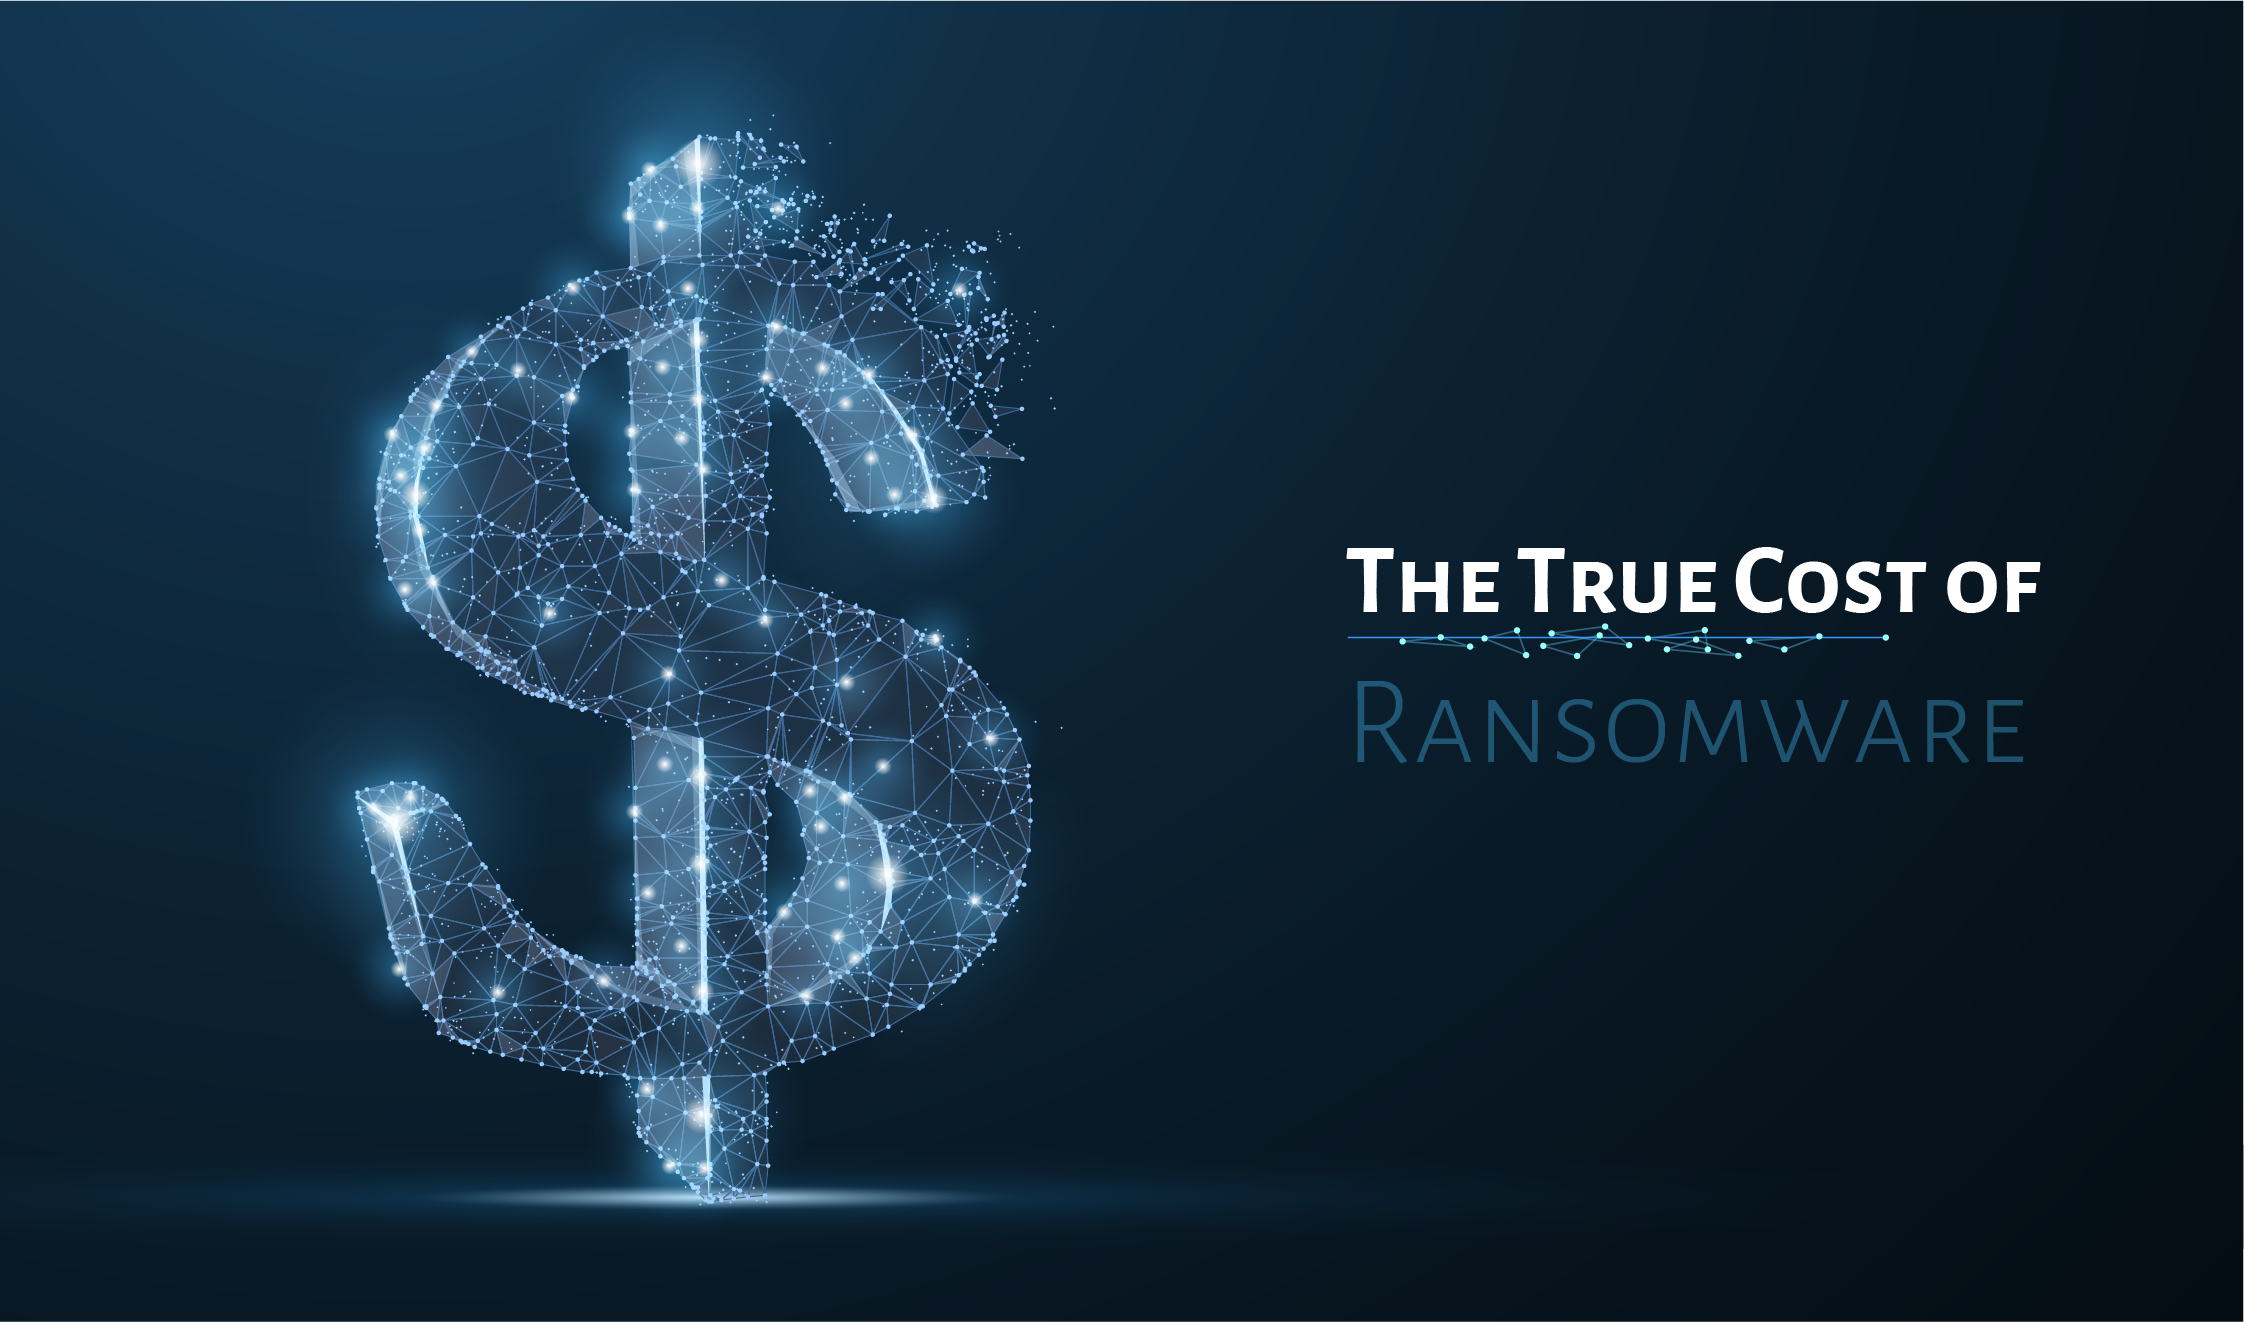 The True Costs of Ransomware